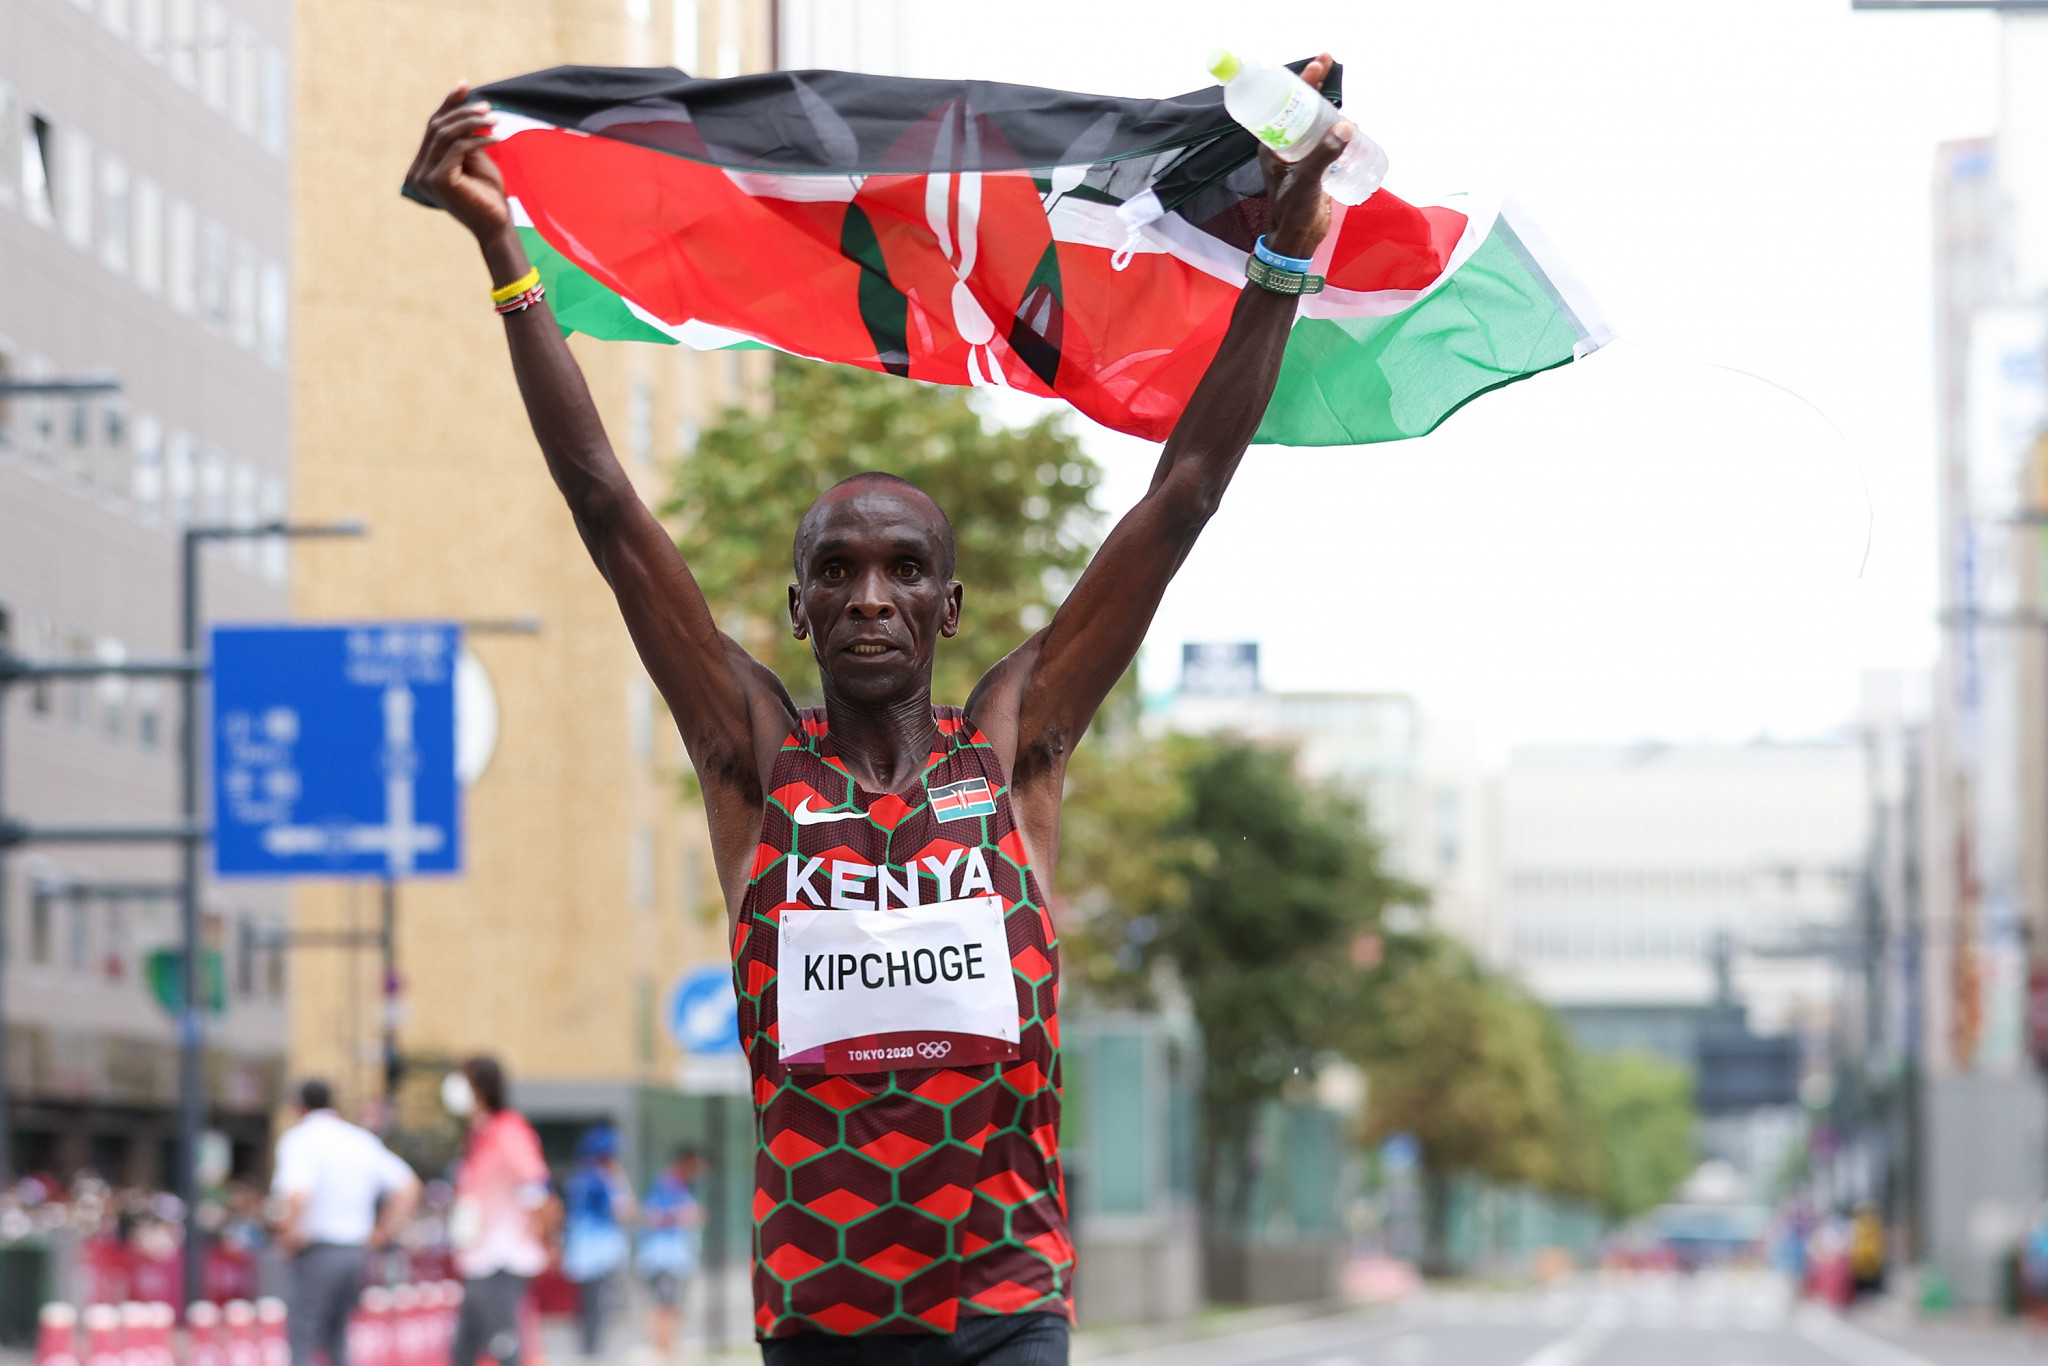 Kipchoge and Kenny retain Olympic titles on road and track on final day of Tokyo 2020